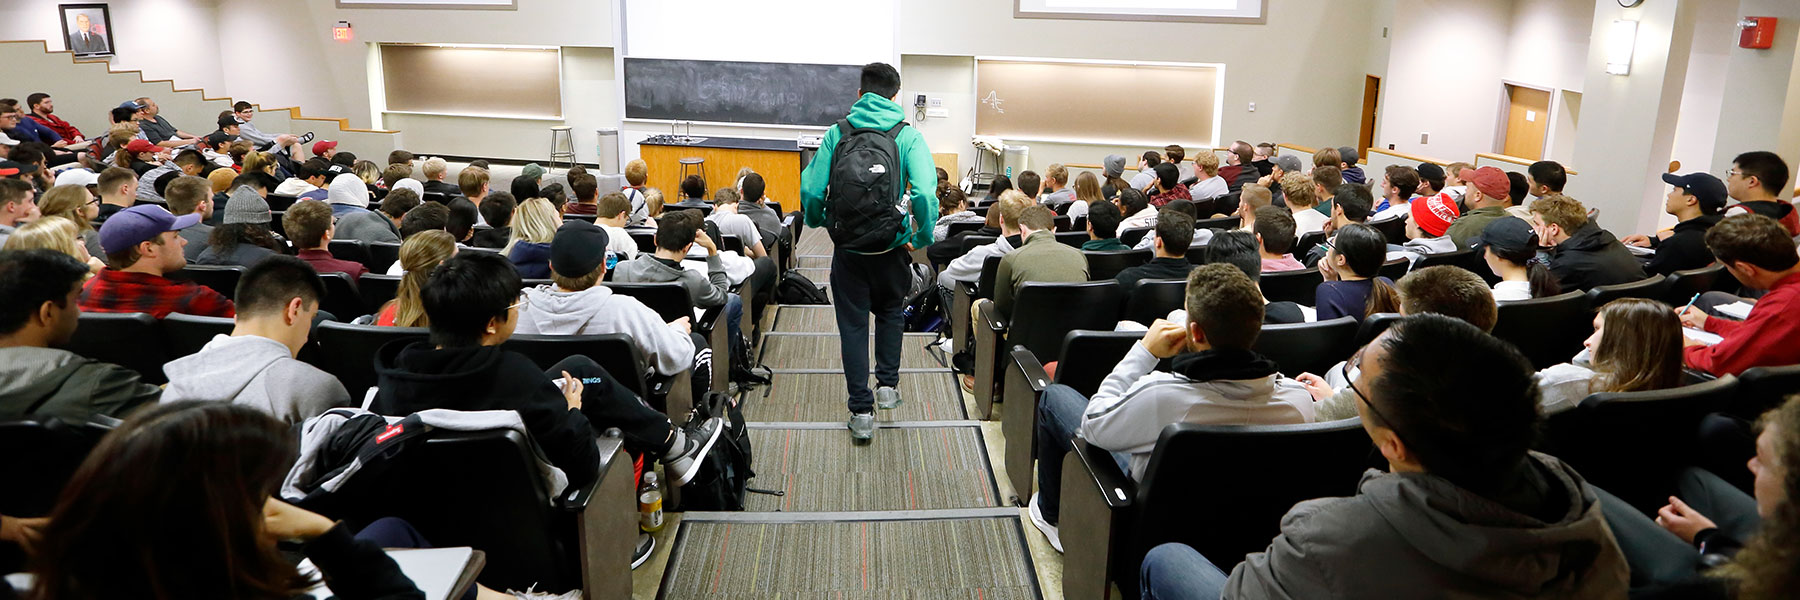 A student walks down the stairs to join his class in a large lecture hall.